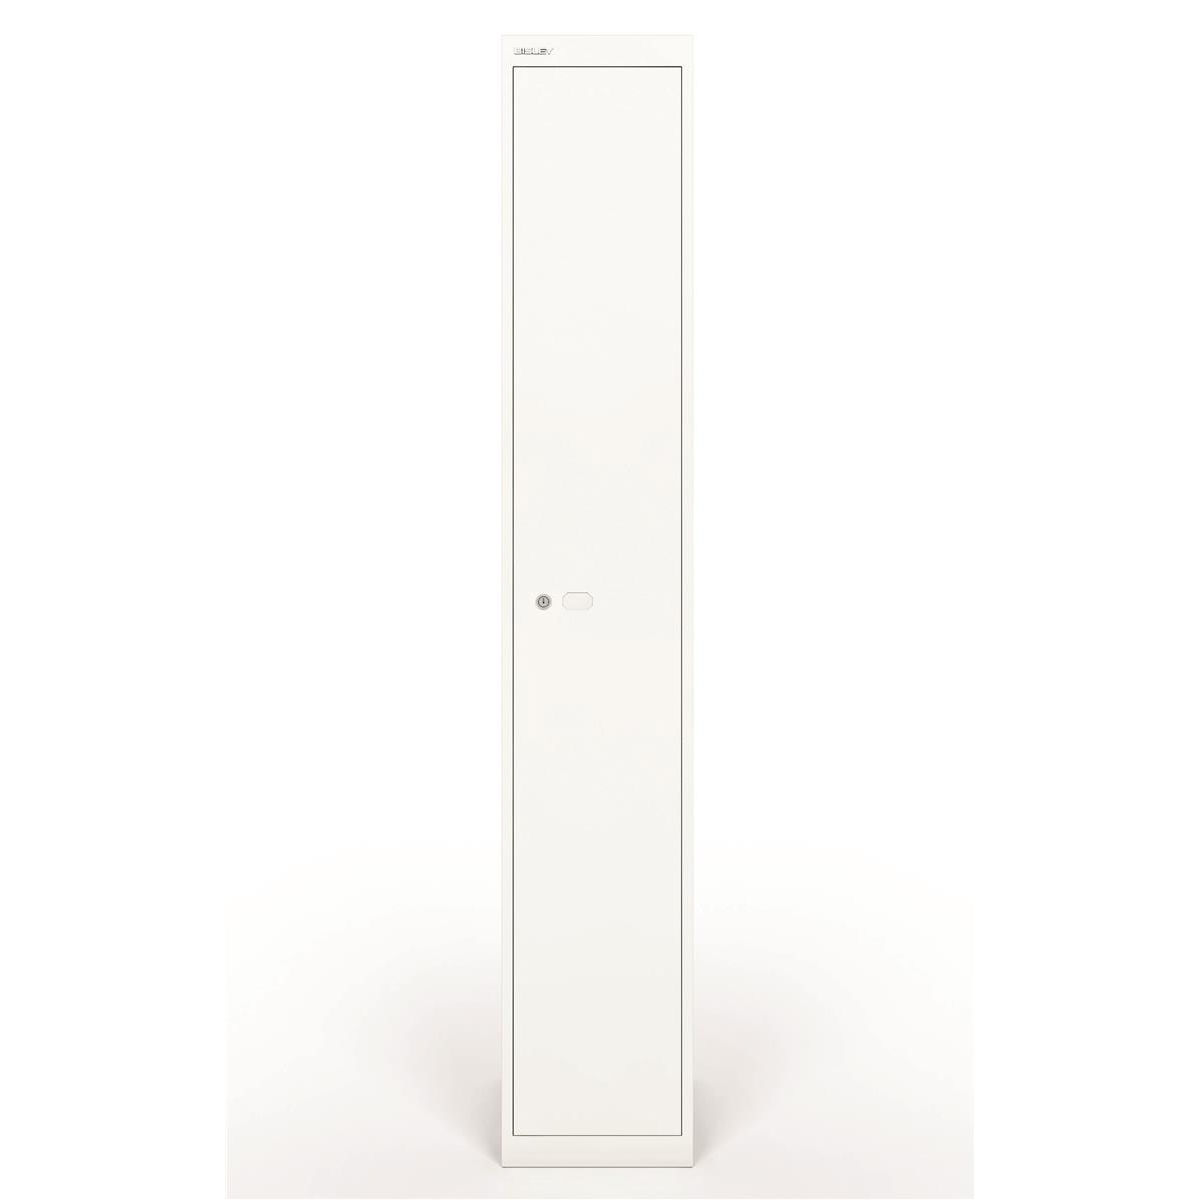 Bisley Locker 1 Door White 305d Ref CLK121-ab9